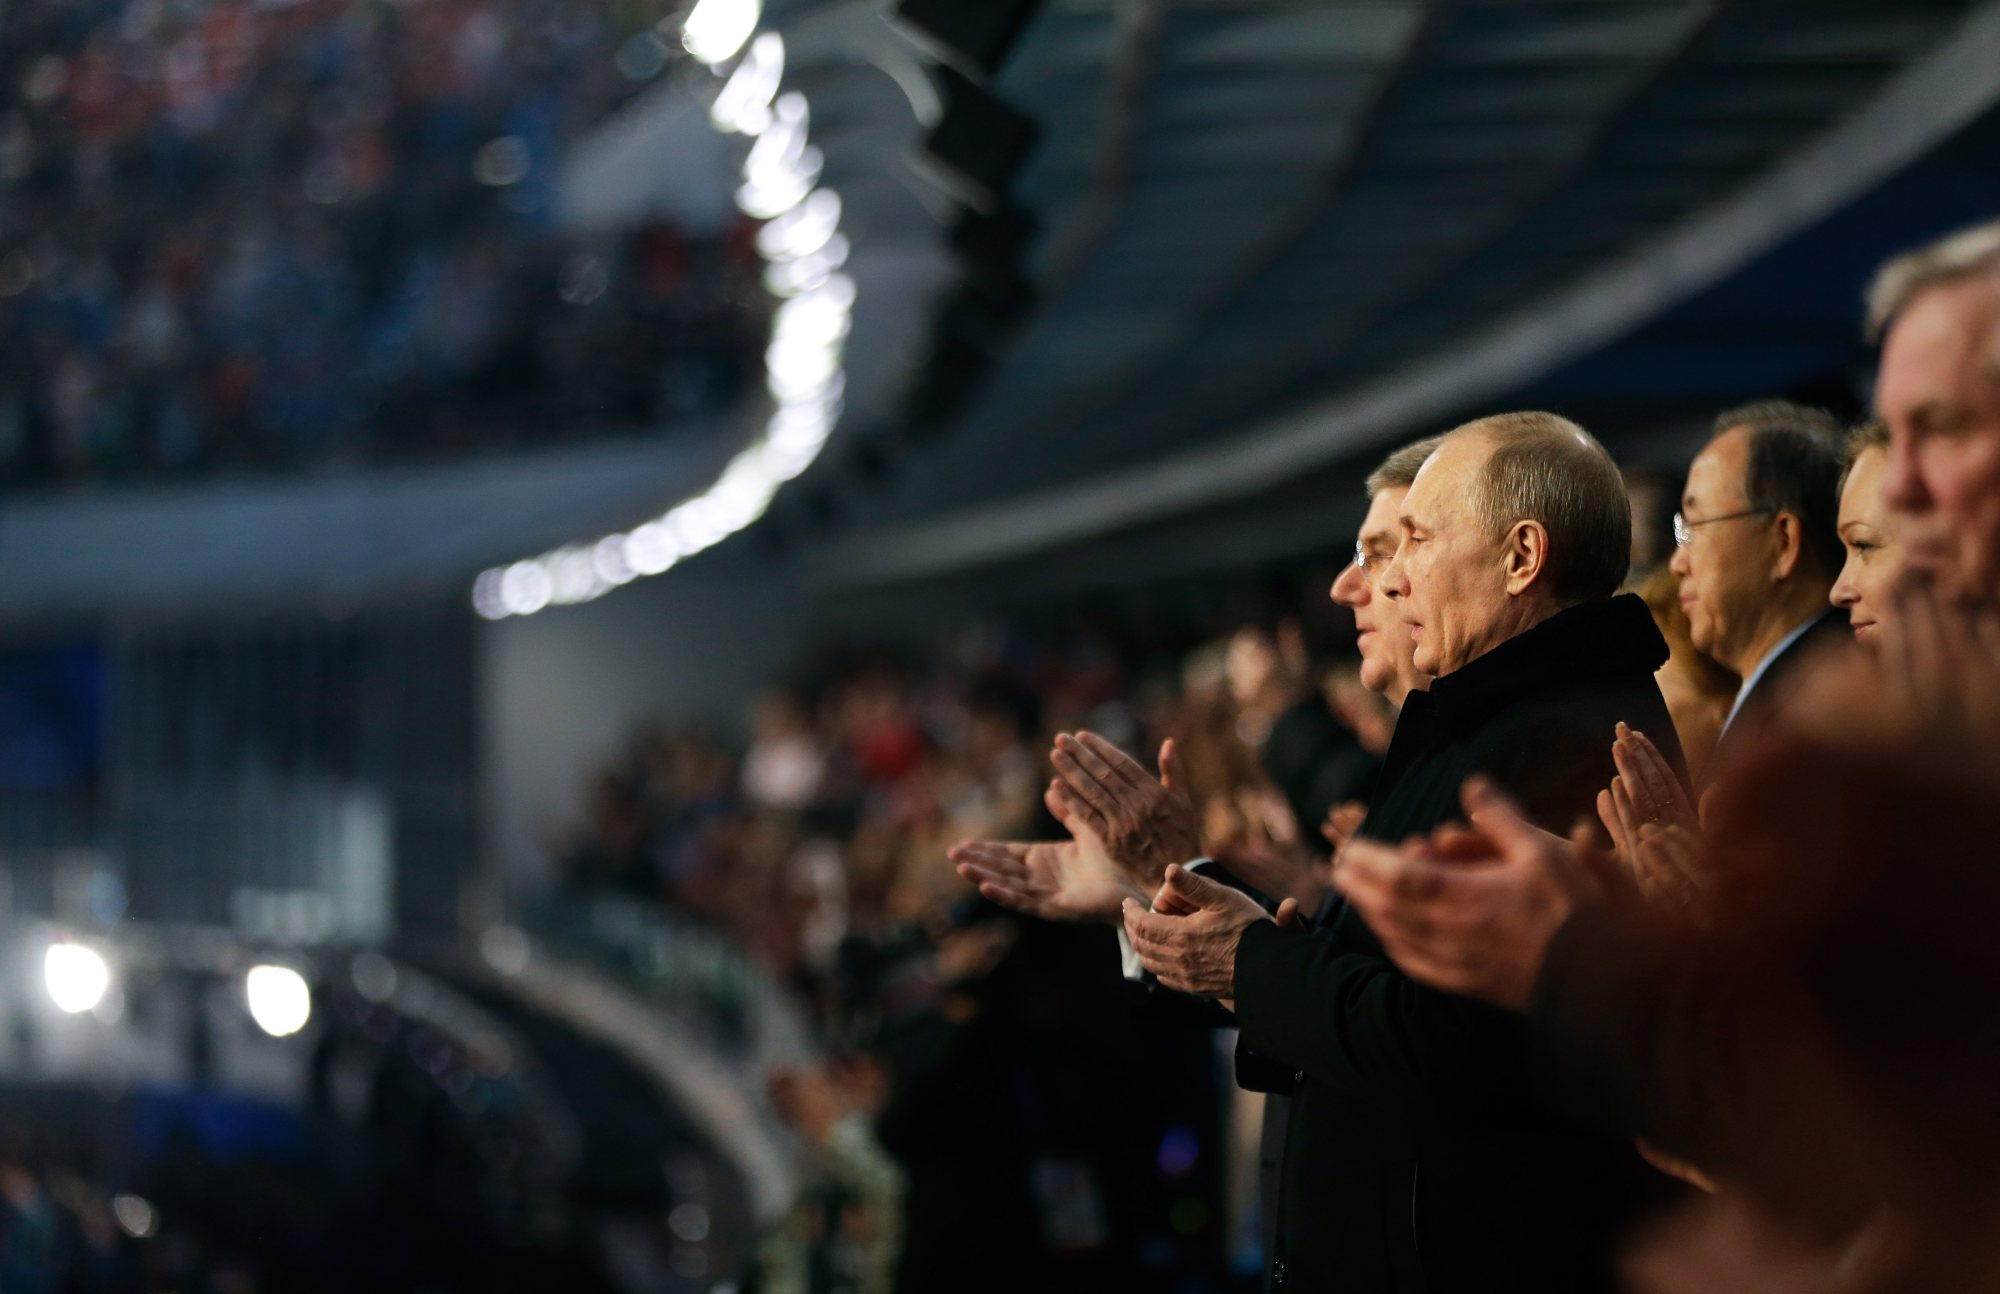 Russian President Vladimir Putin, right, and International Olympic Committee President Thomas Bach, left, applaud during the playing of the Russian national anthem.